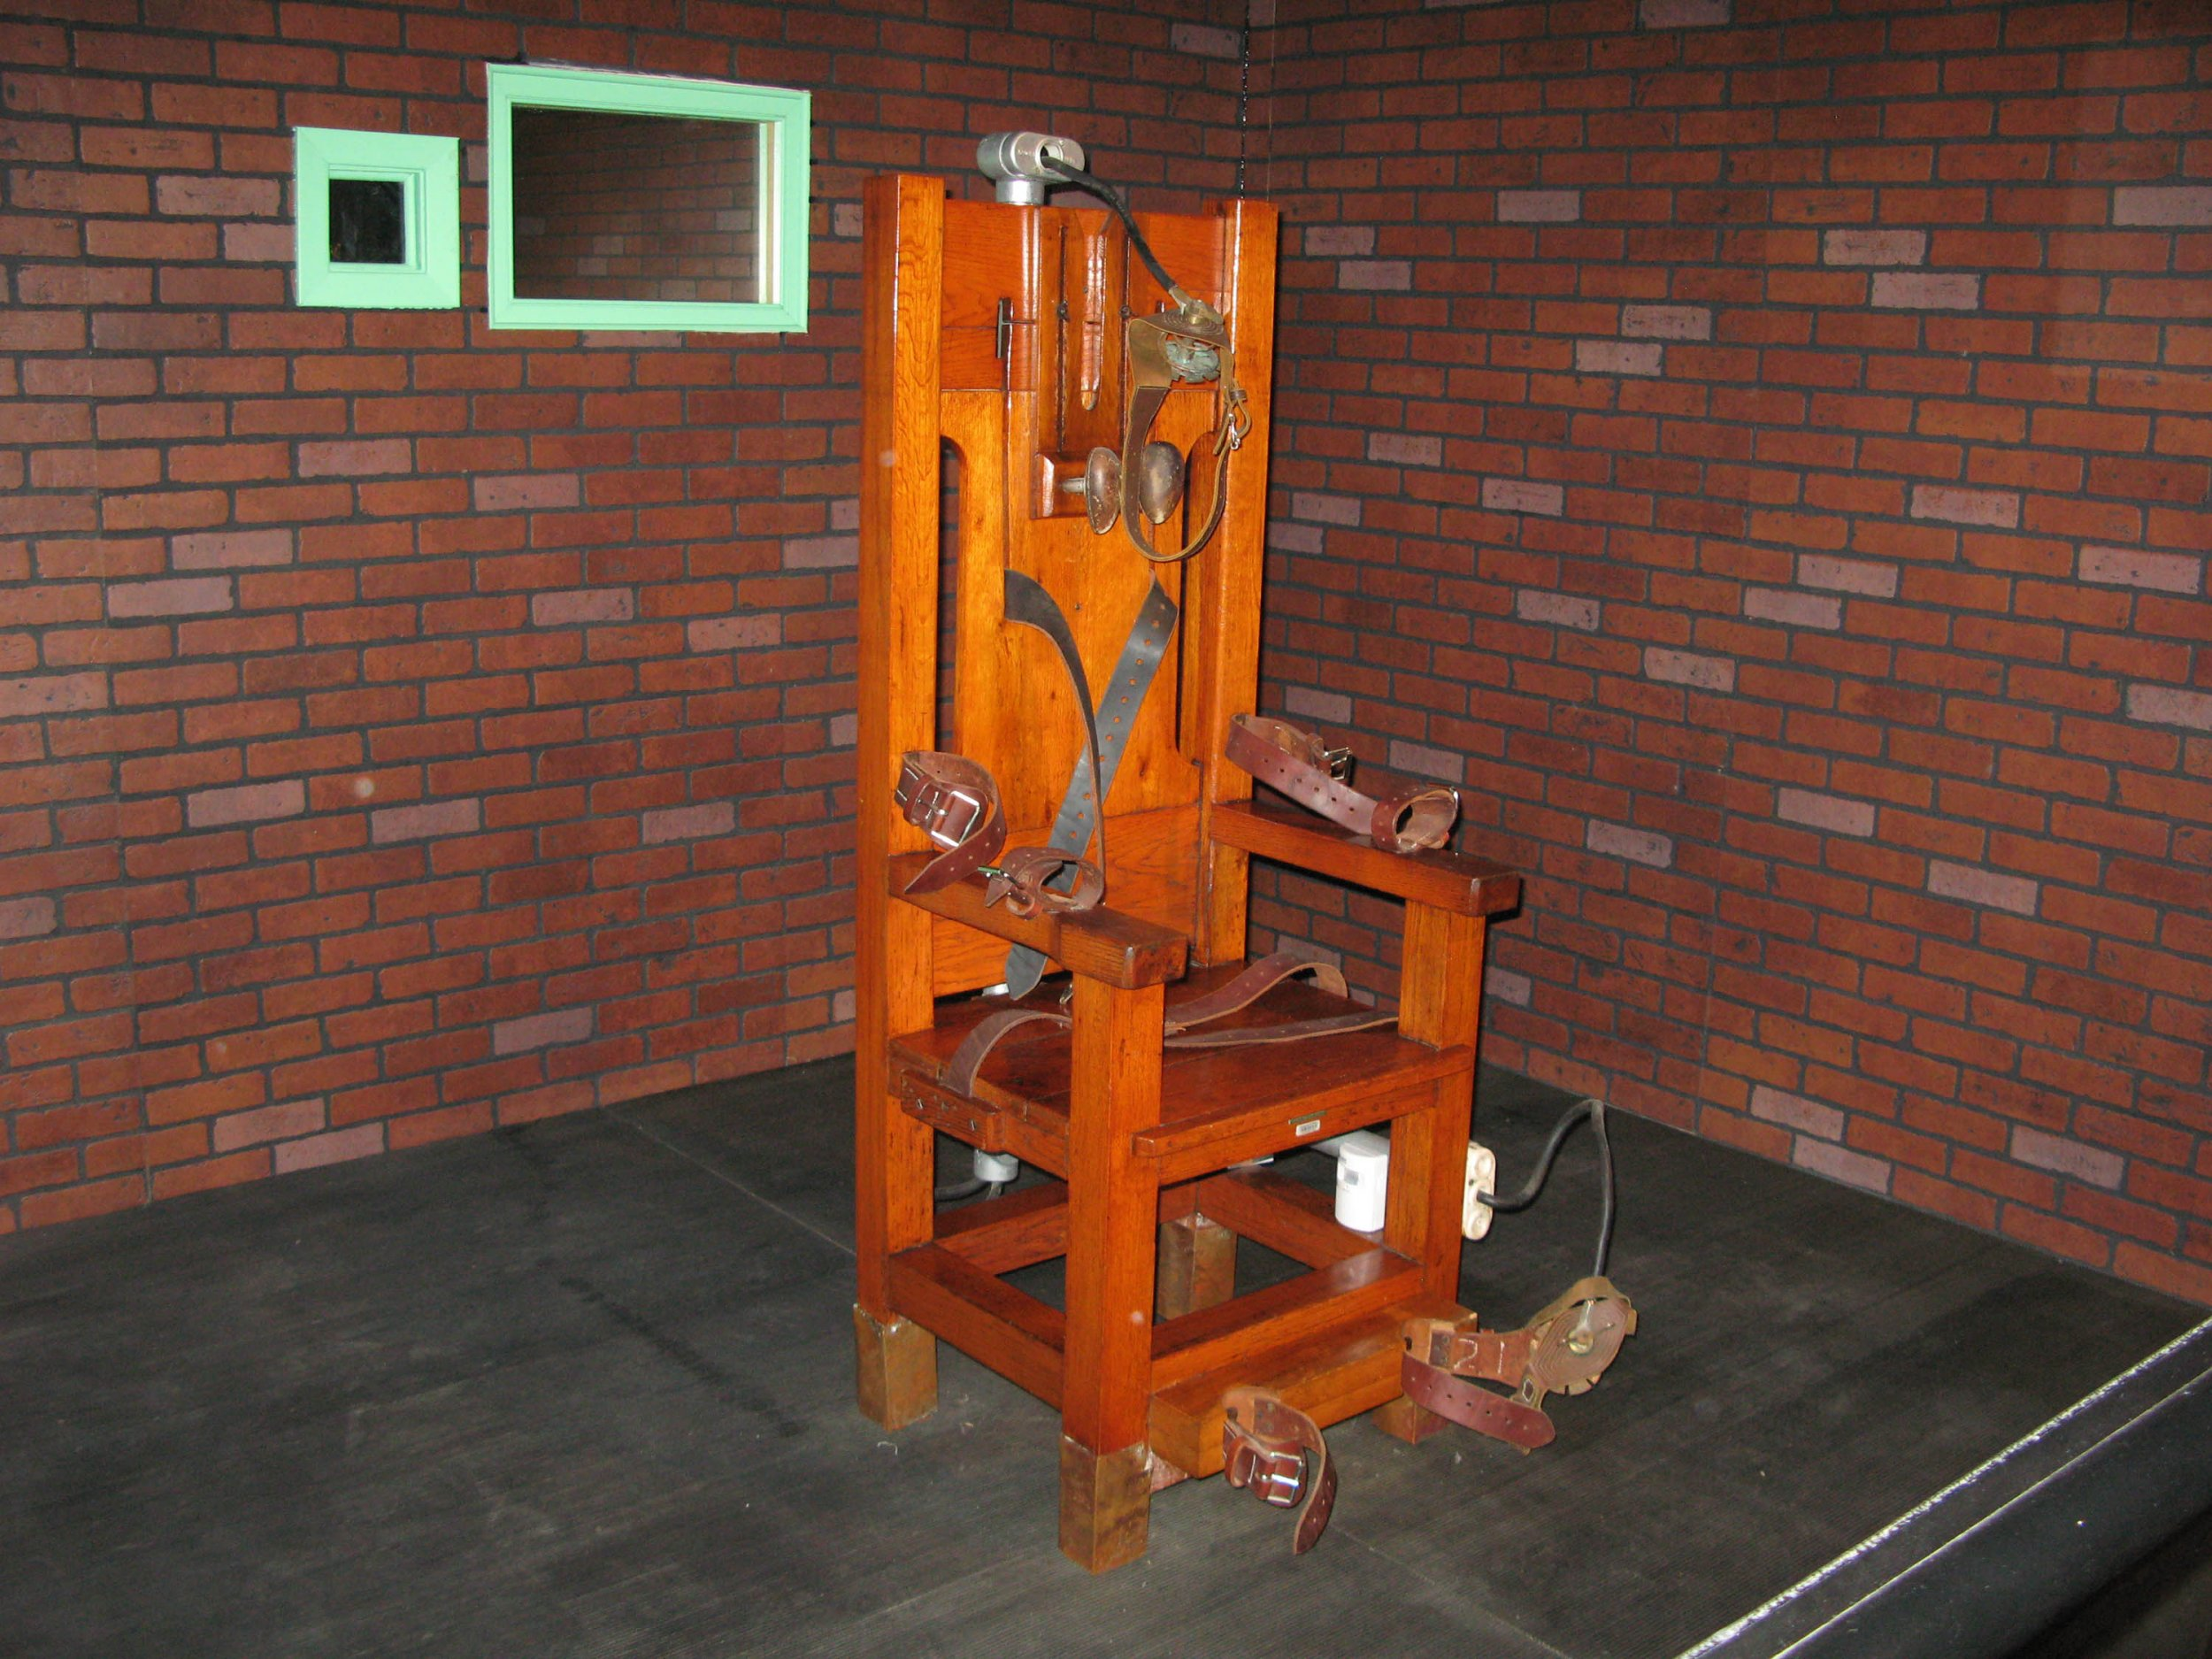 Electric chair chamber - Make The Electric Chair Great Again North Carolina Lawmaker Says Co Opting Trump S Slogan